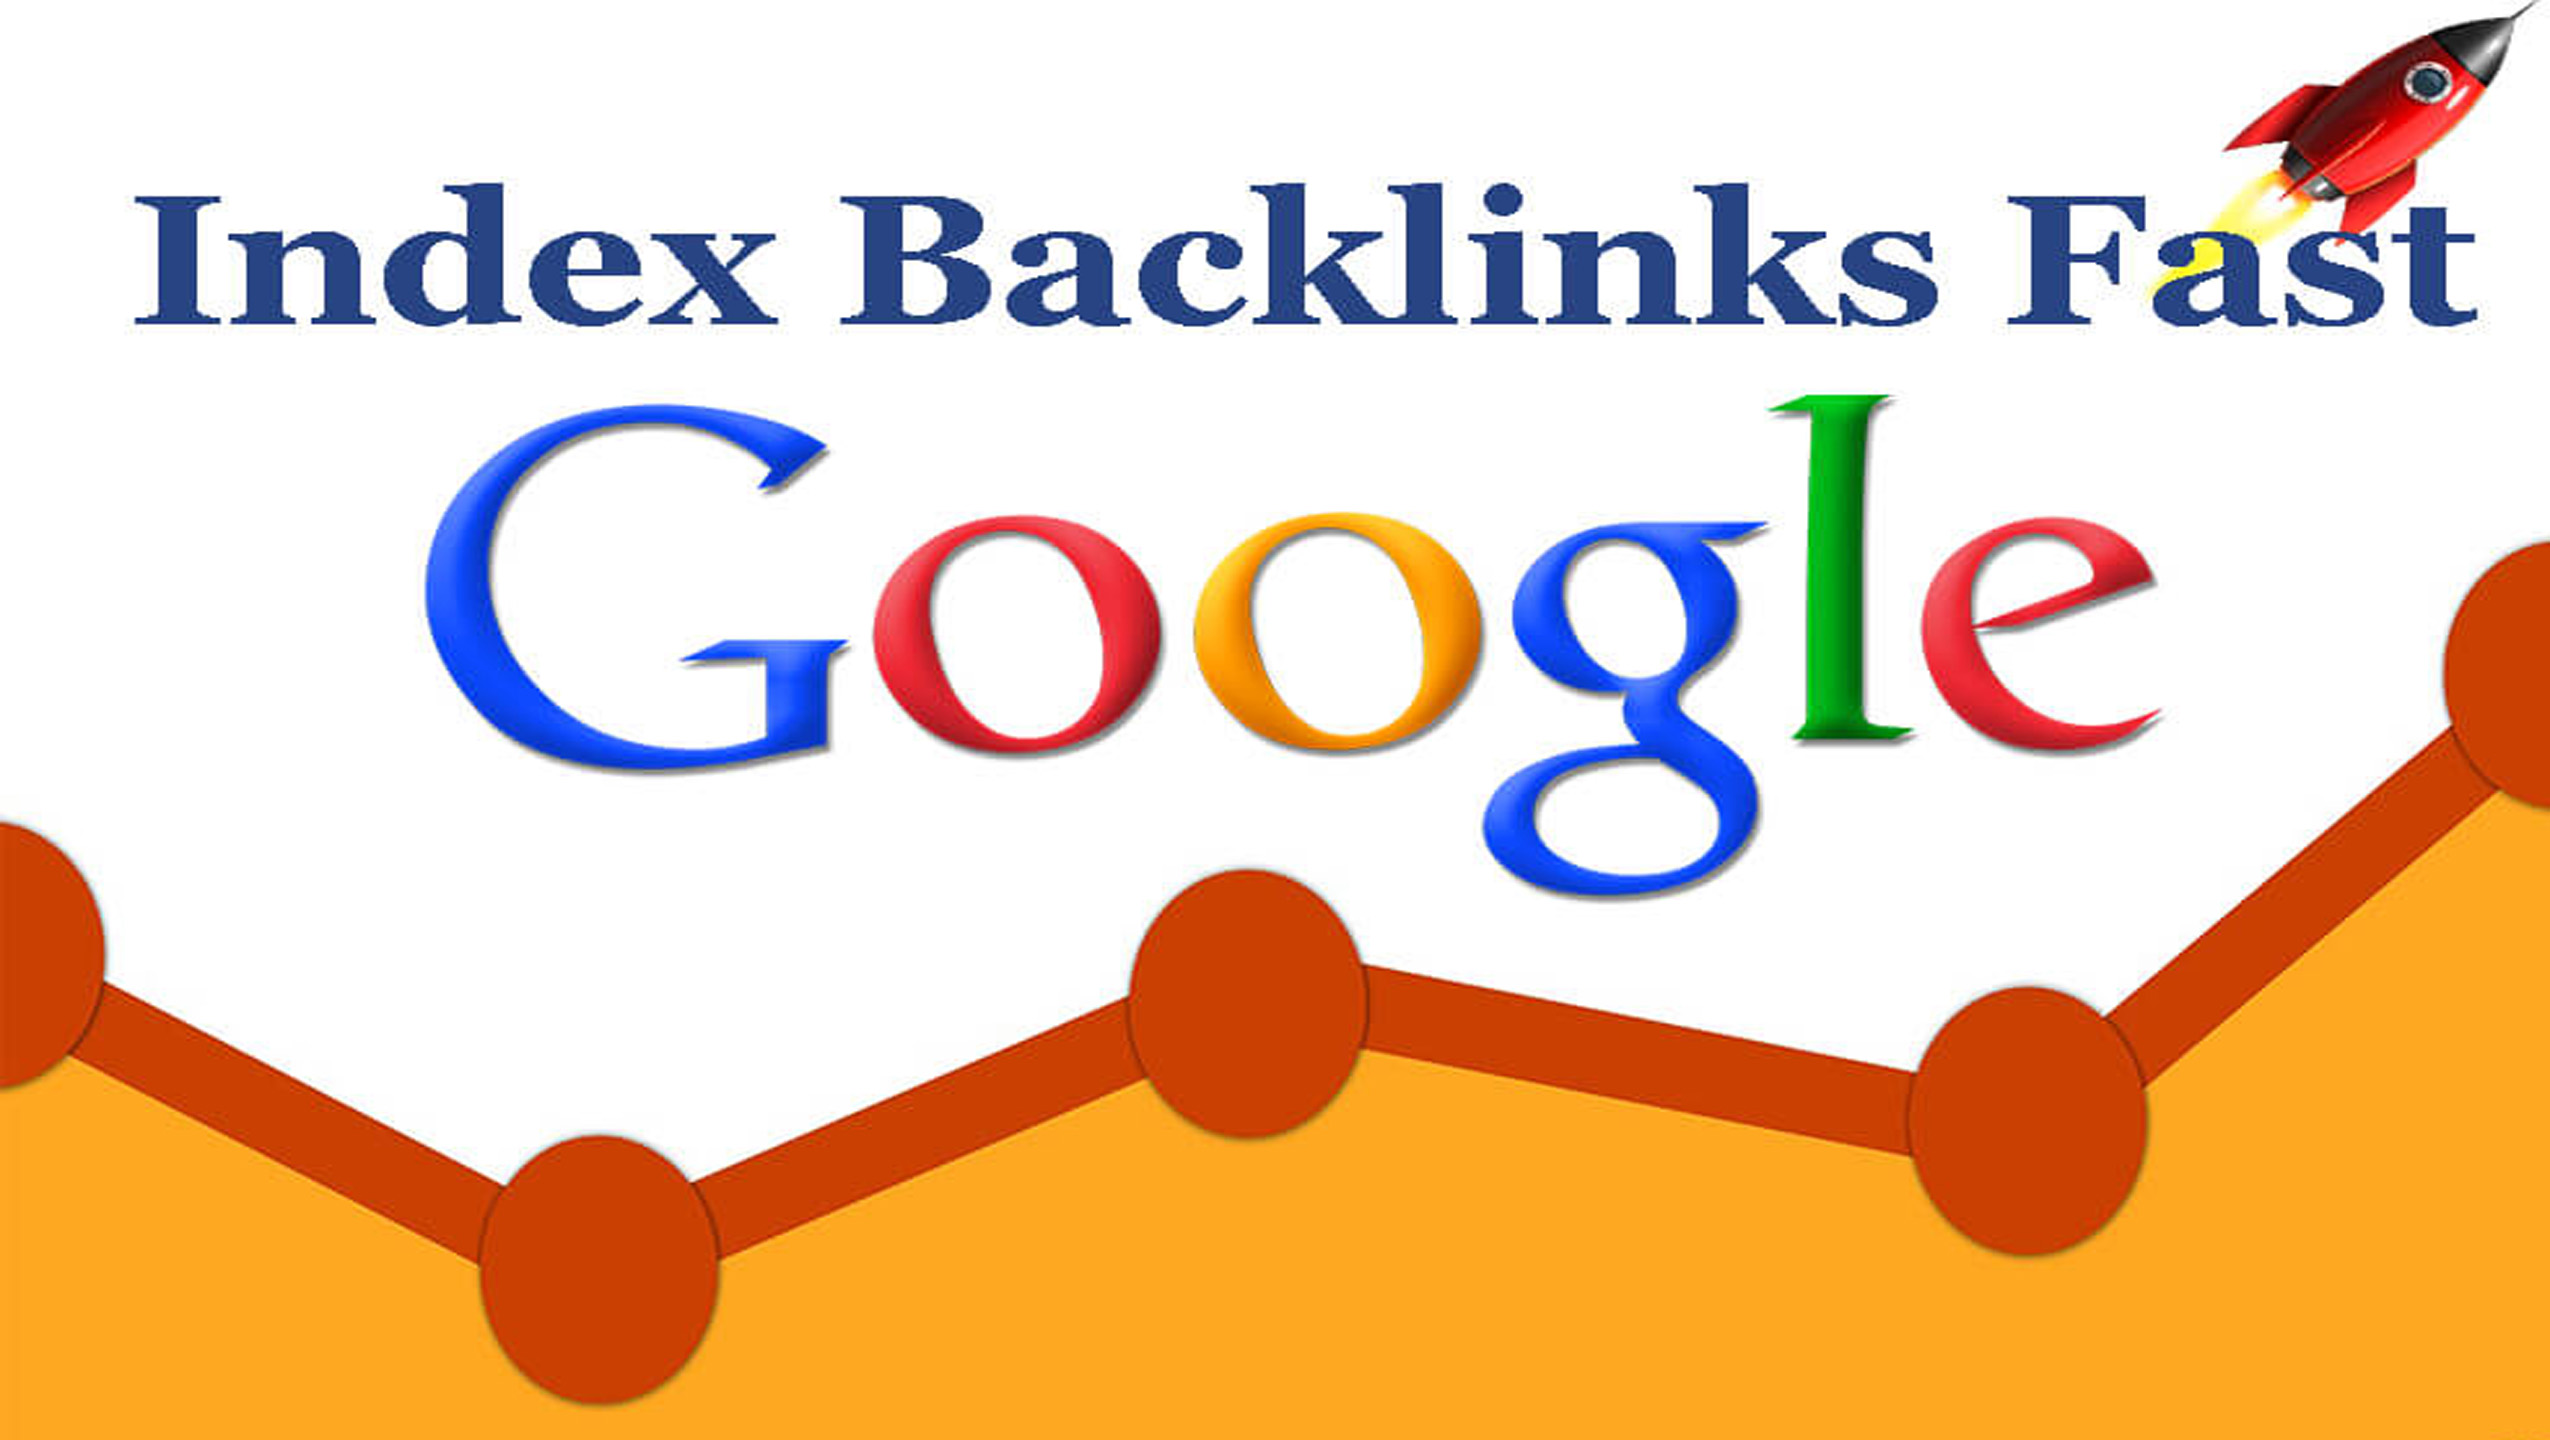 Get 100+Indexed and contractual Backlinks with fast delivery